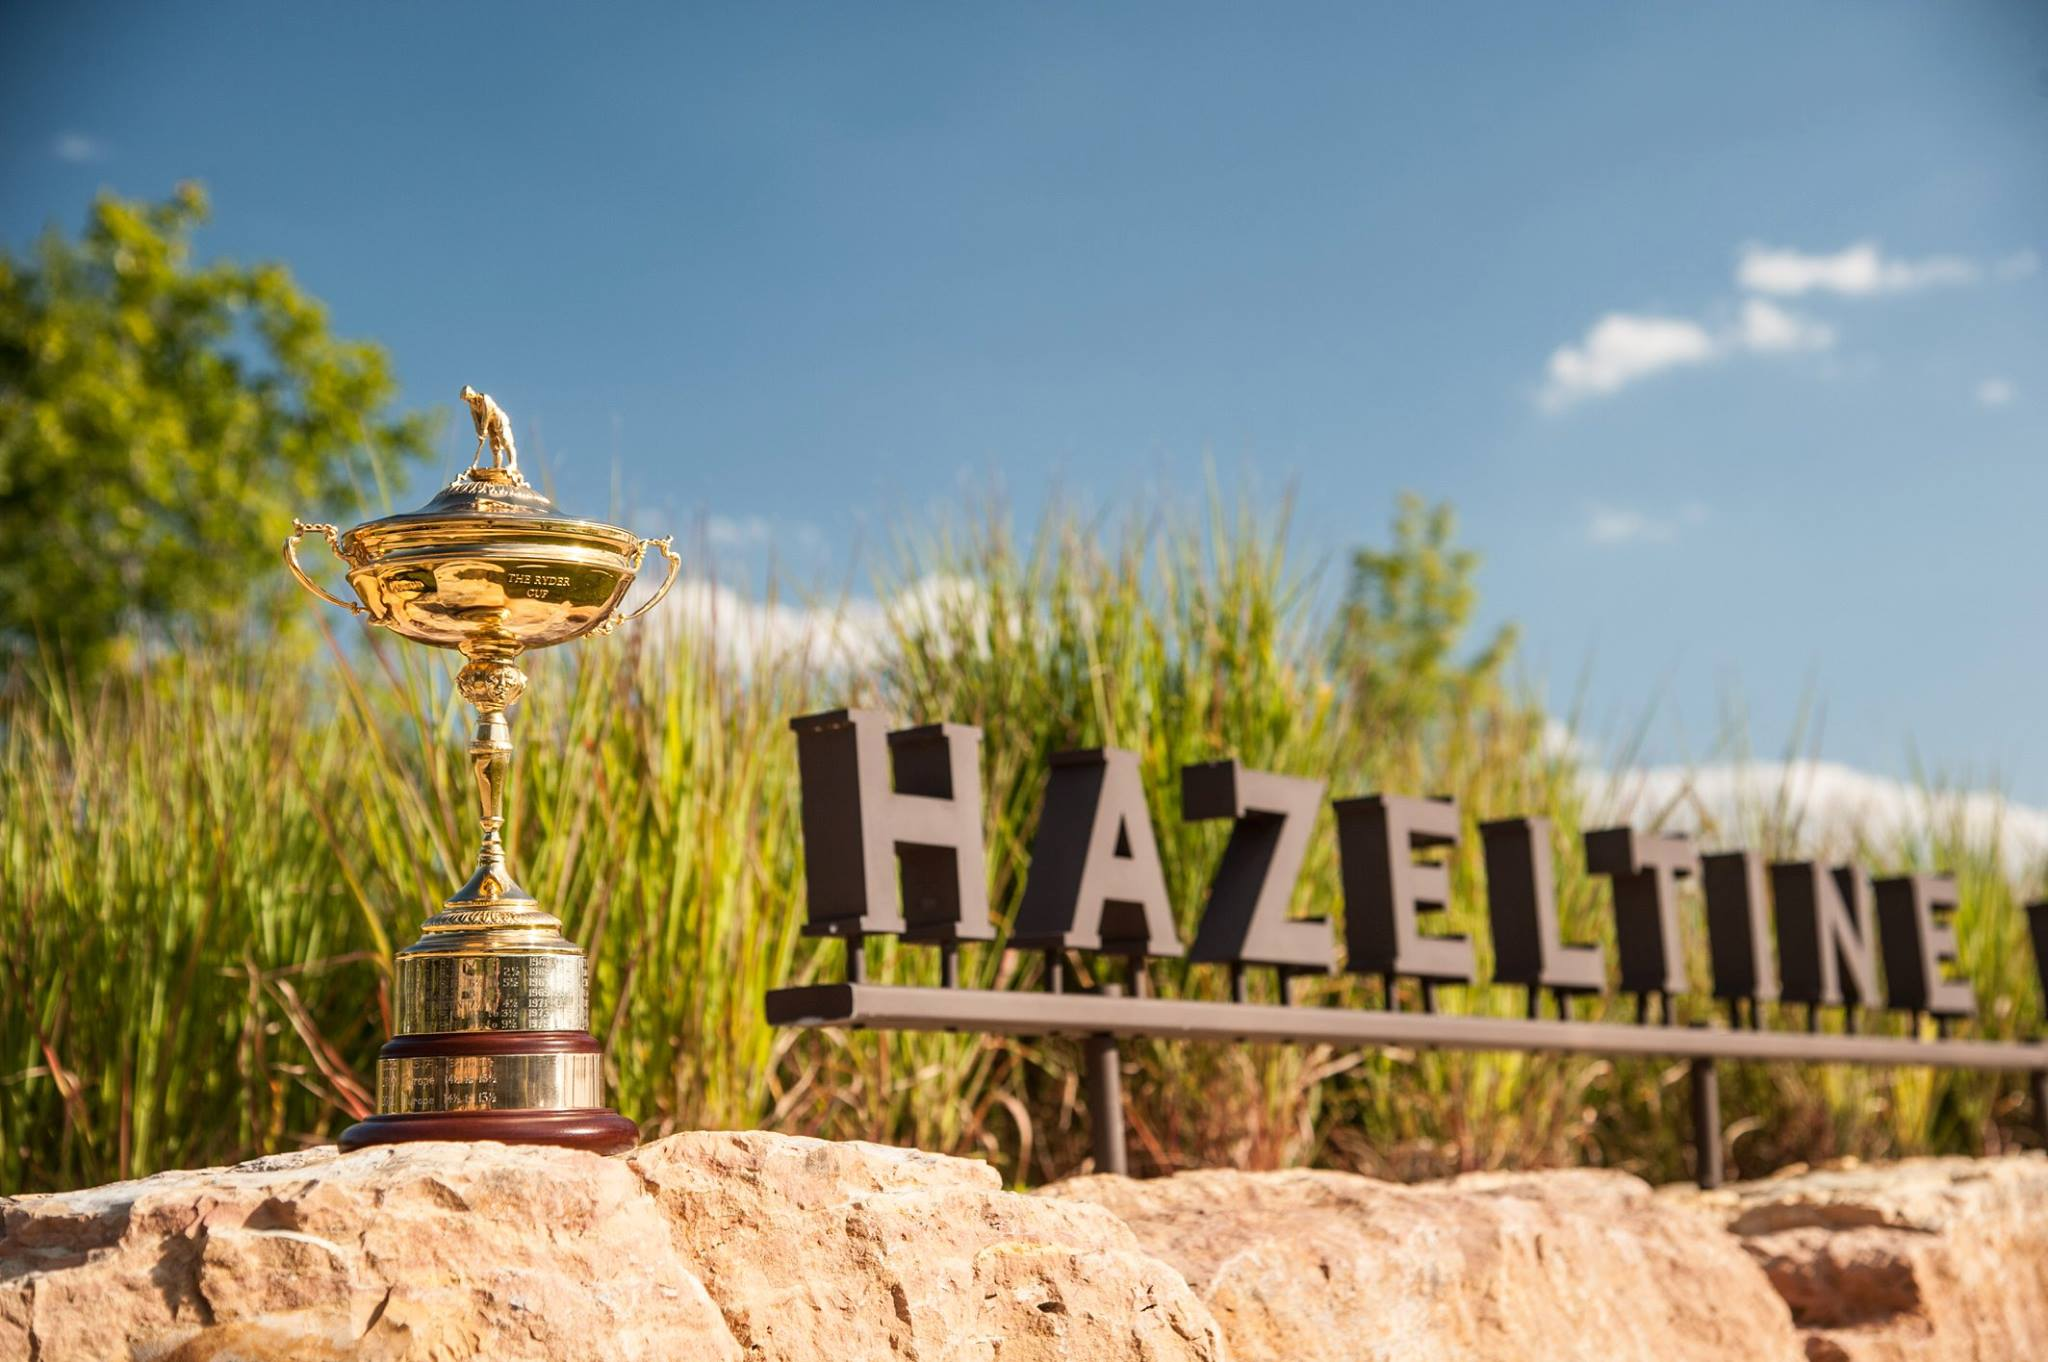 Europe Couldn't Help But Feel Blue at Hazeltine